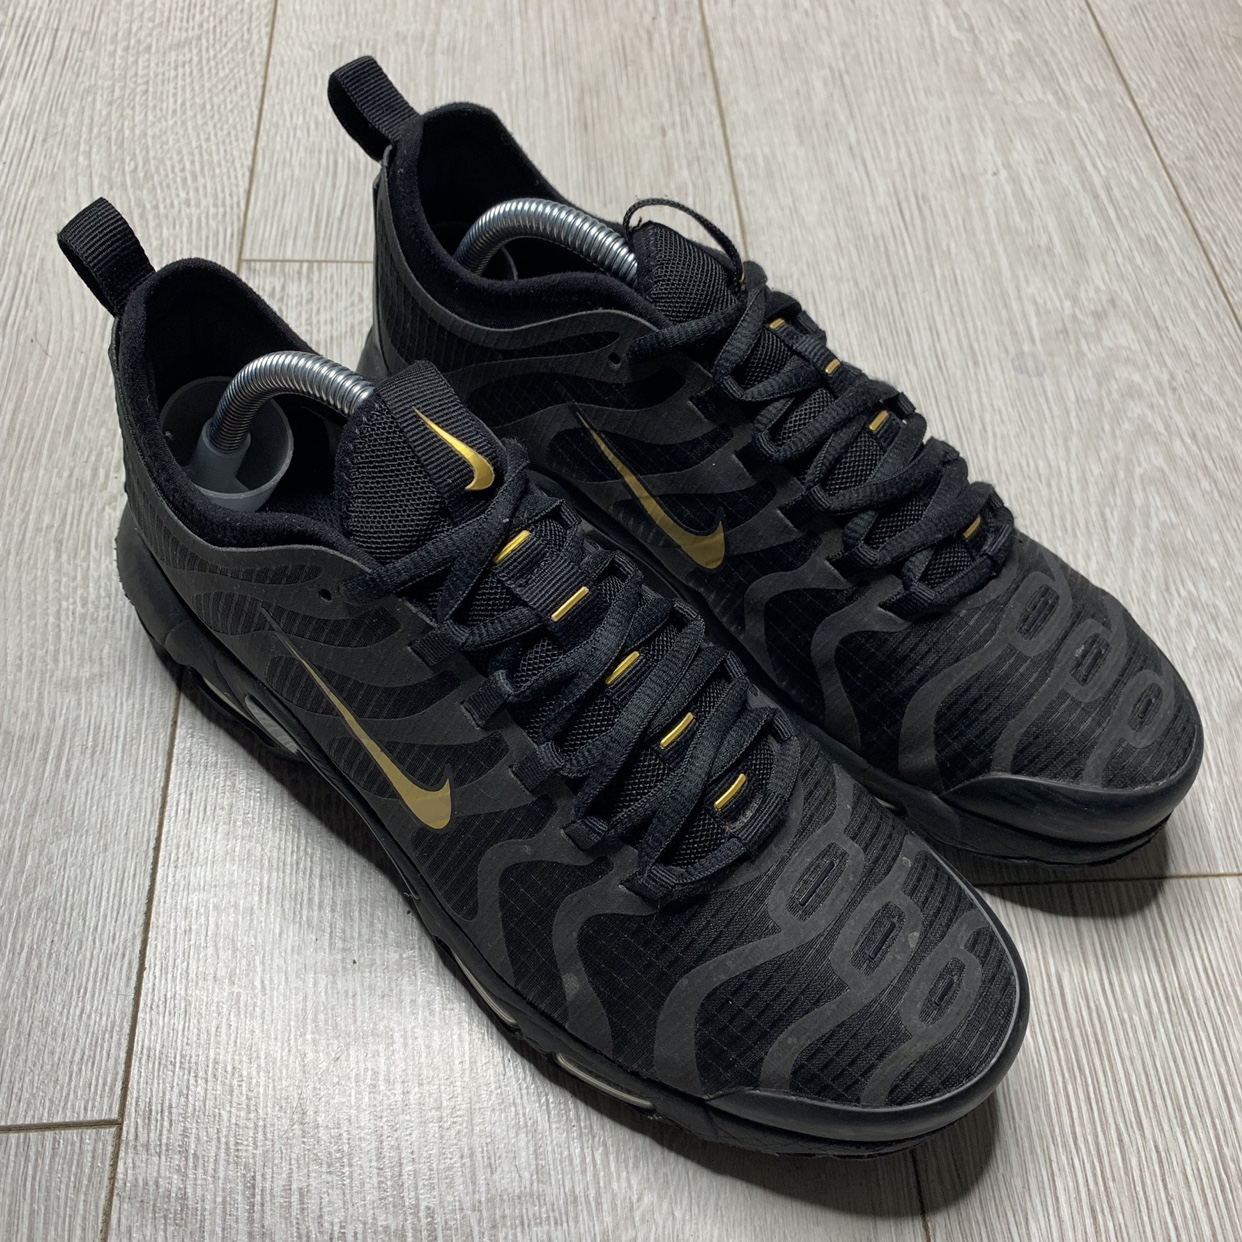 dirt cheap great deals 2017 save up to 80% Nike Air Max Plus TN Ultra Footlocker Exclusive Size... - Depop